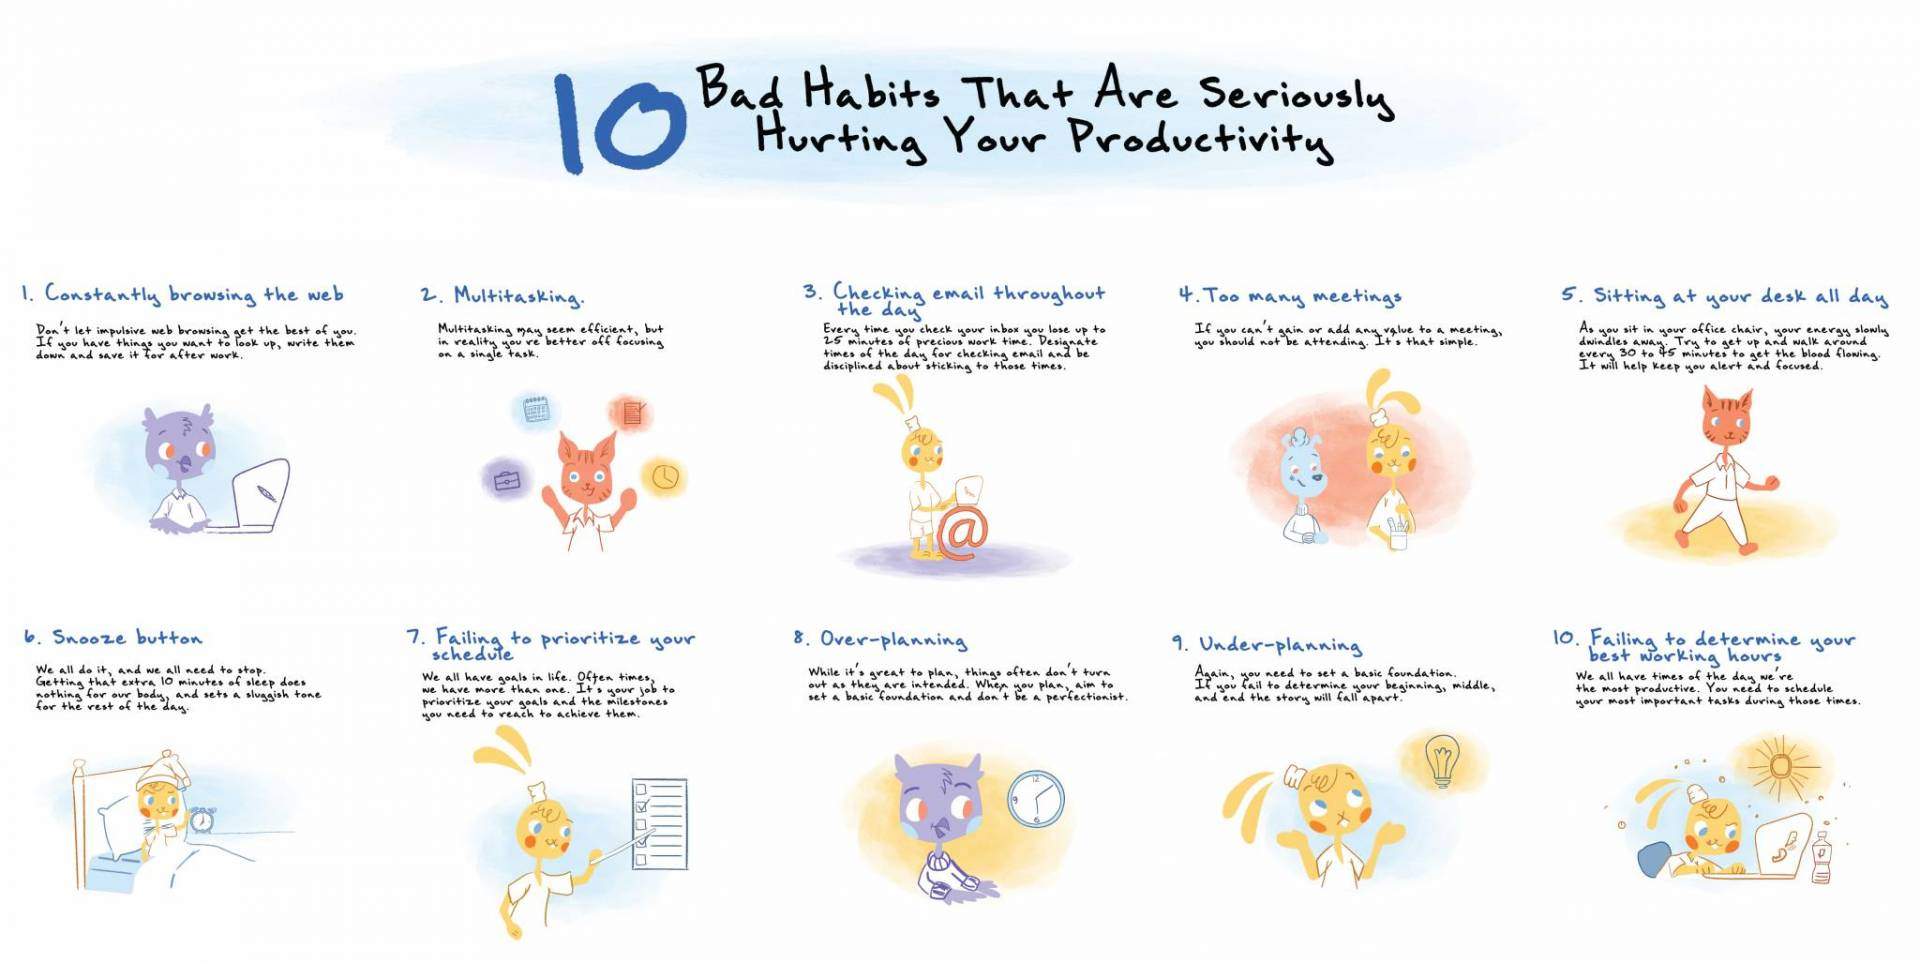 10 Bad habits you should break to be more productive